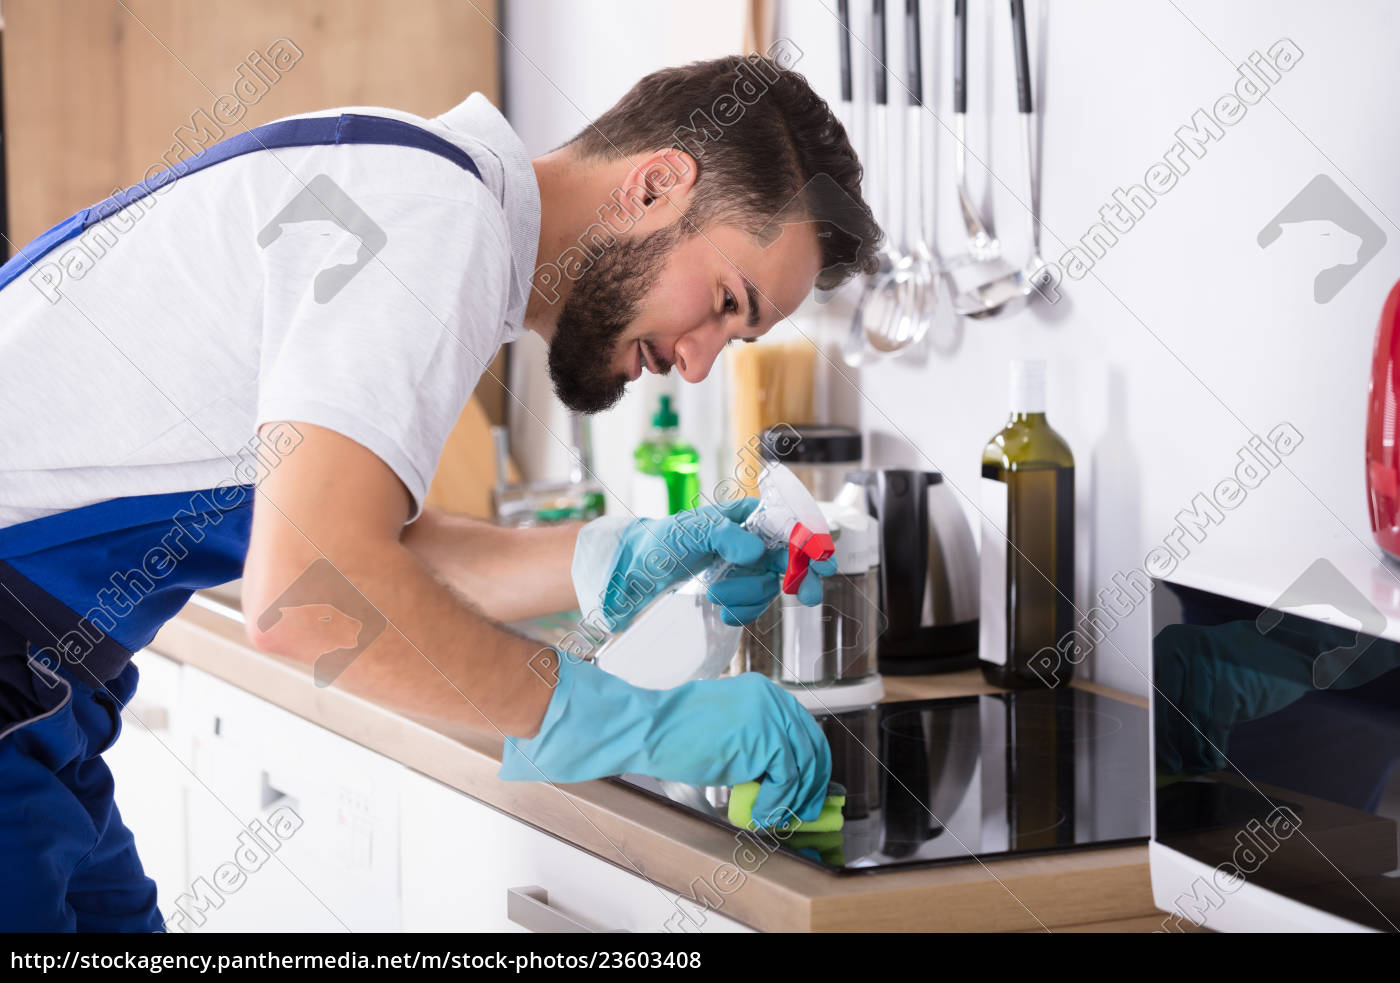 janitor, cleaning, induction, stove - 23603408